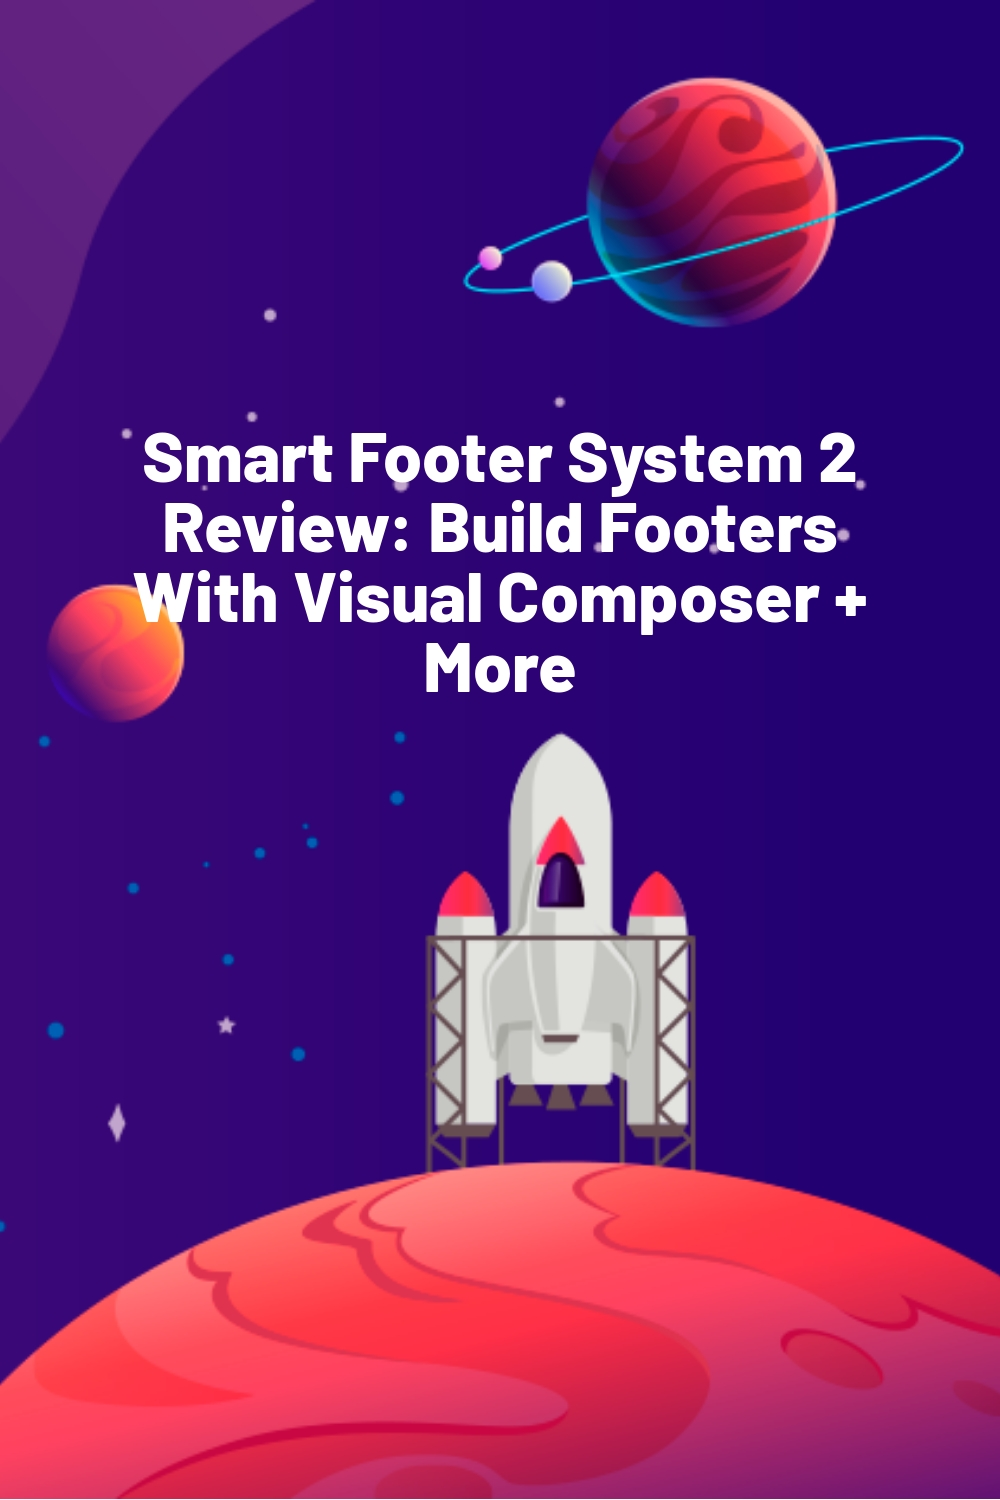 Smart Footer System 2 Review: Build Footers With Visual Composer + More